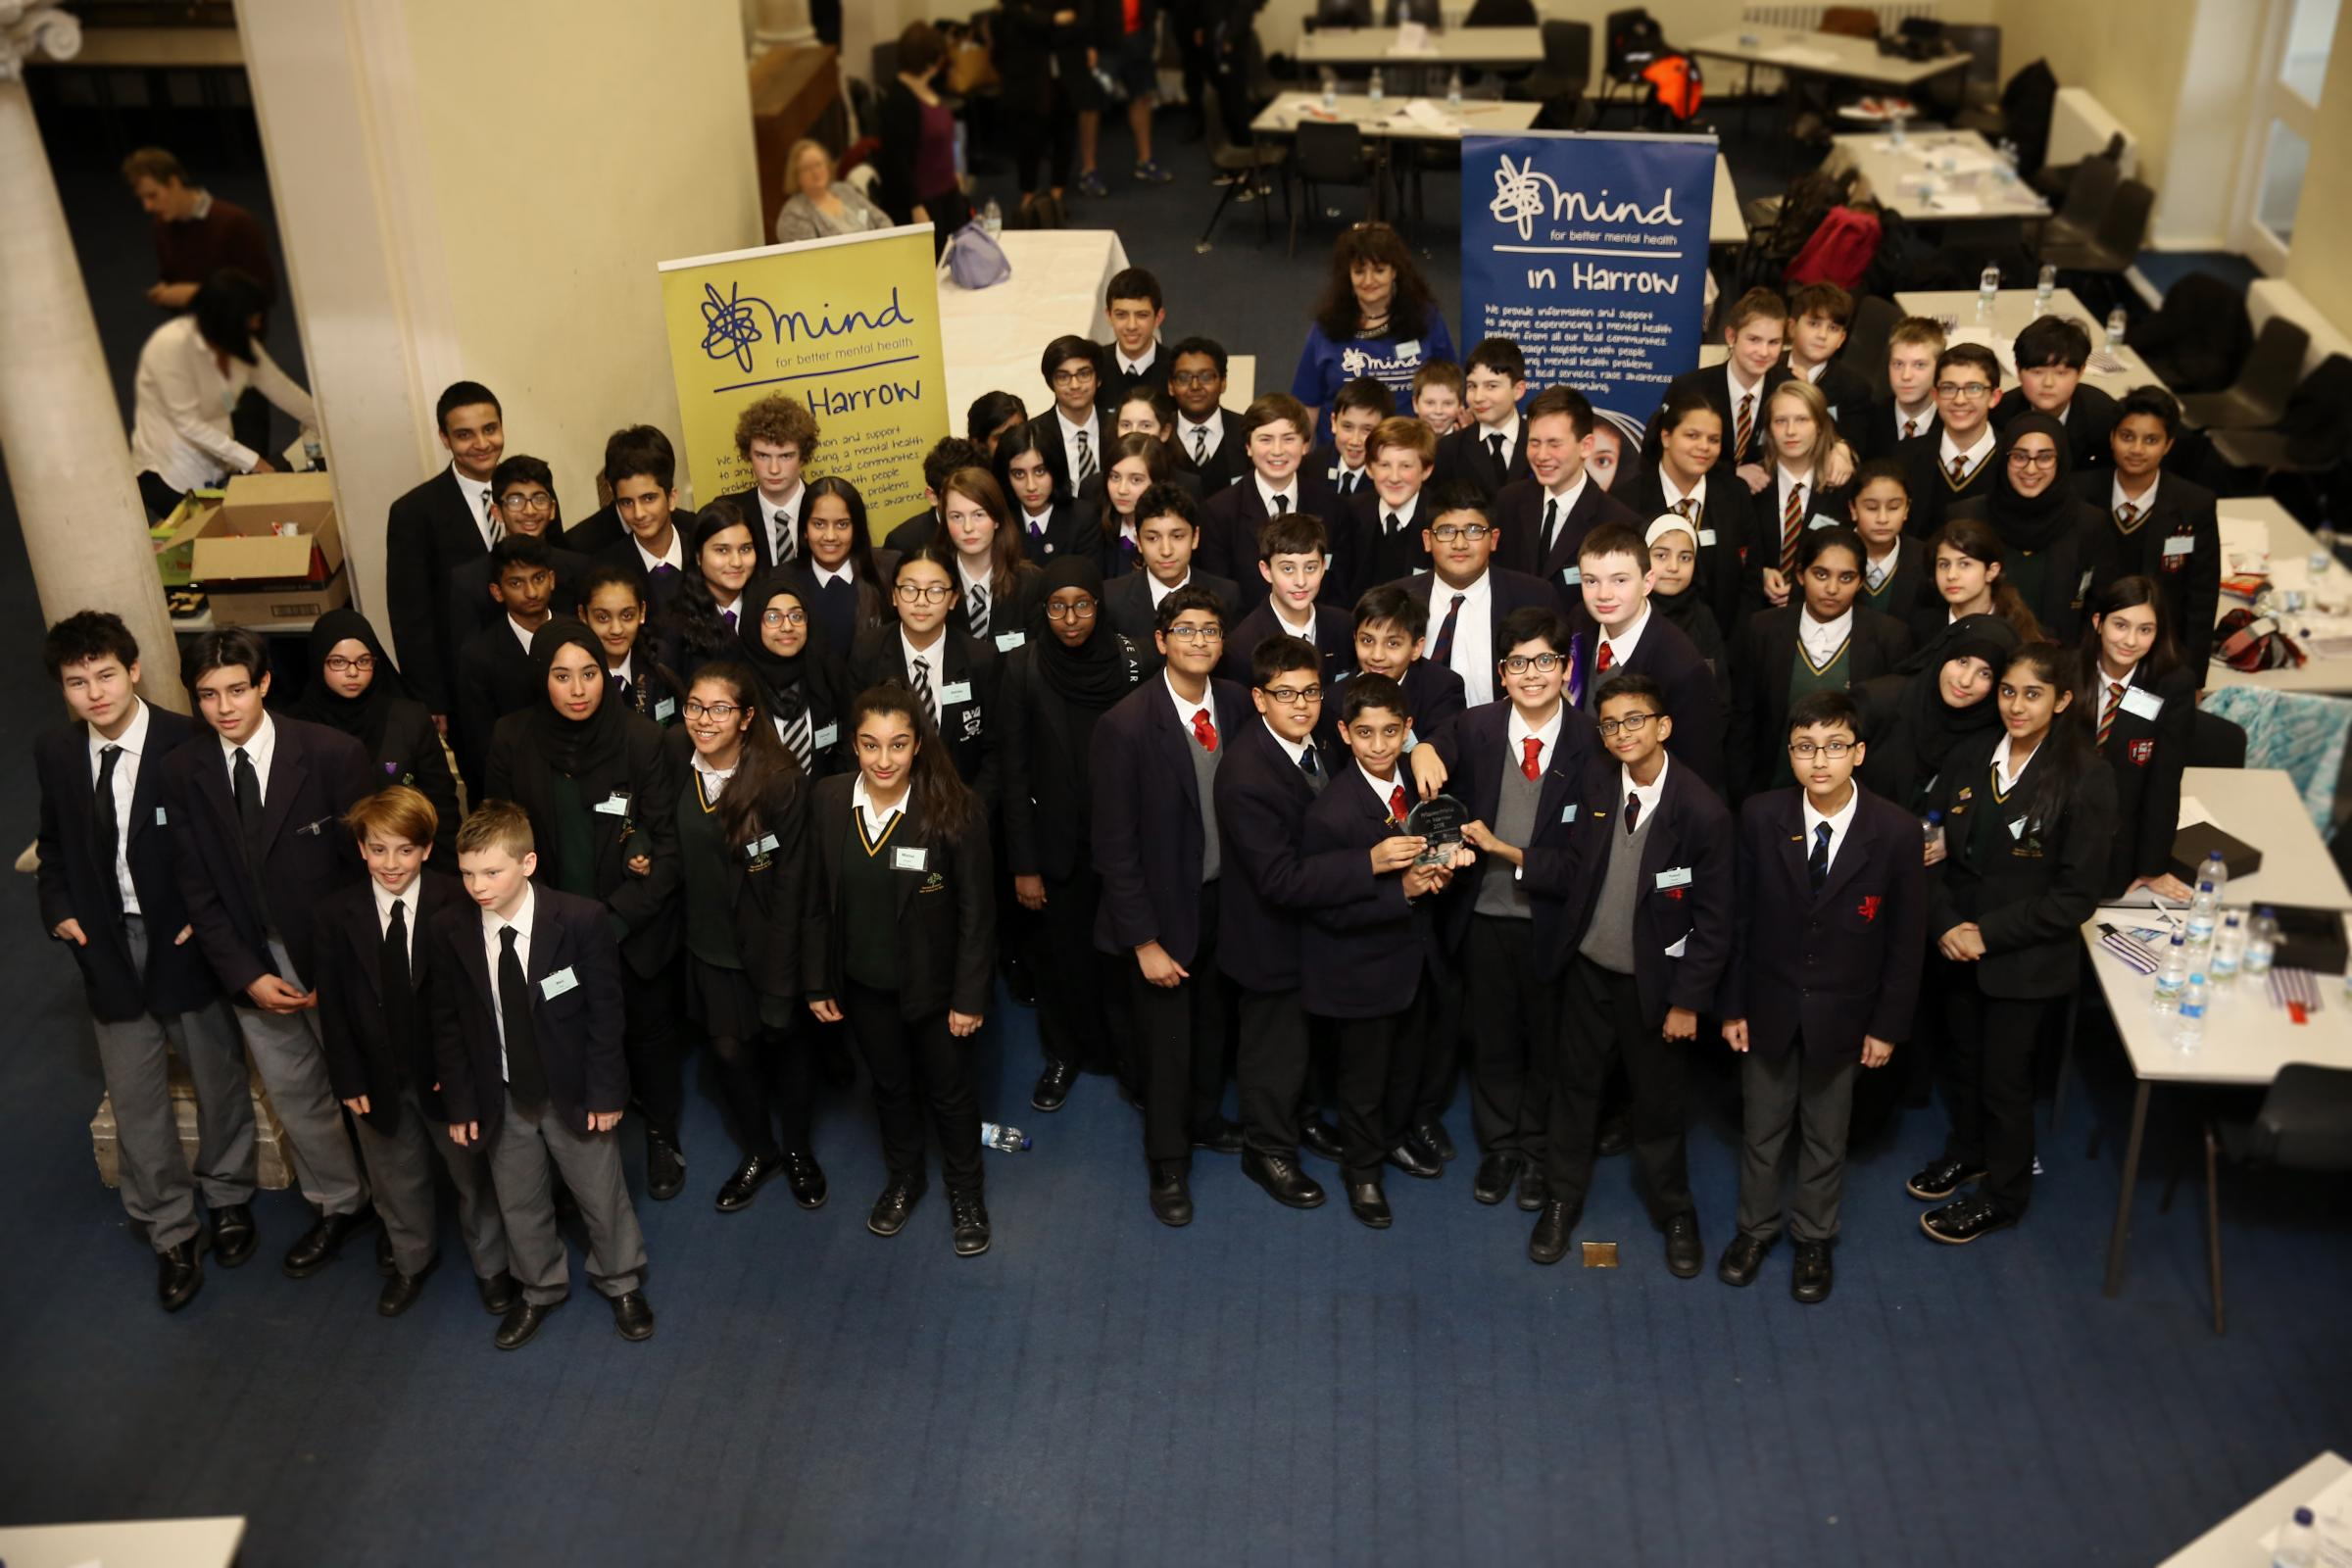 Pupils, staff and volunteers at MasterMind in Harrow 2018